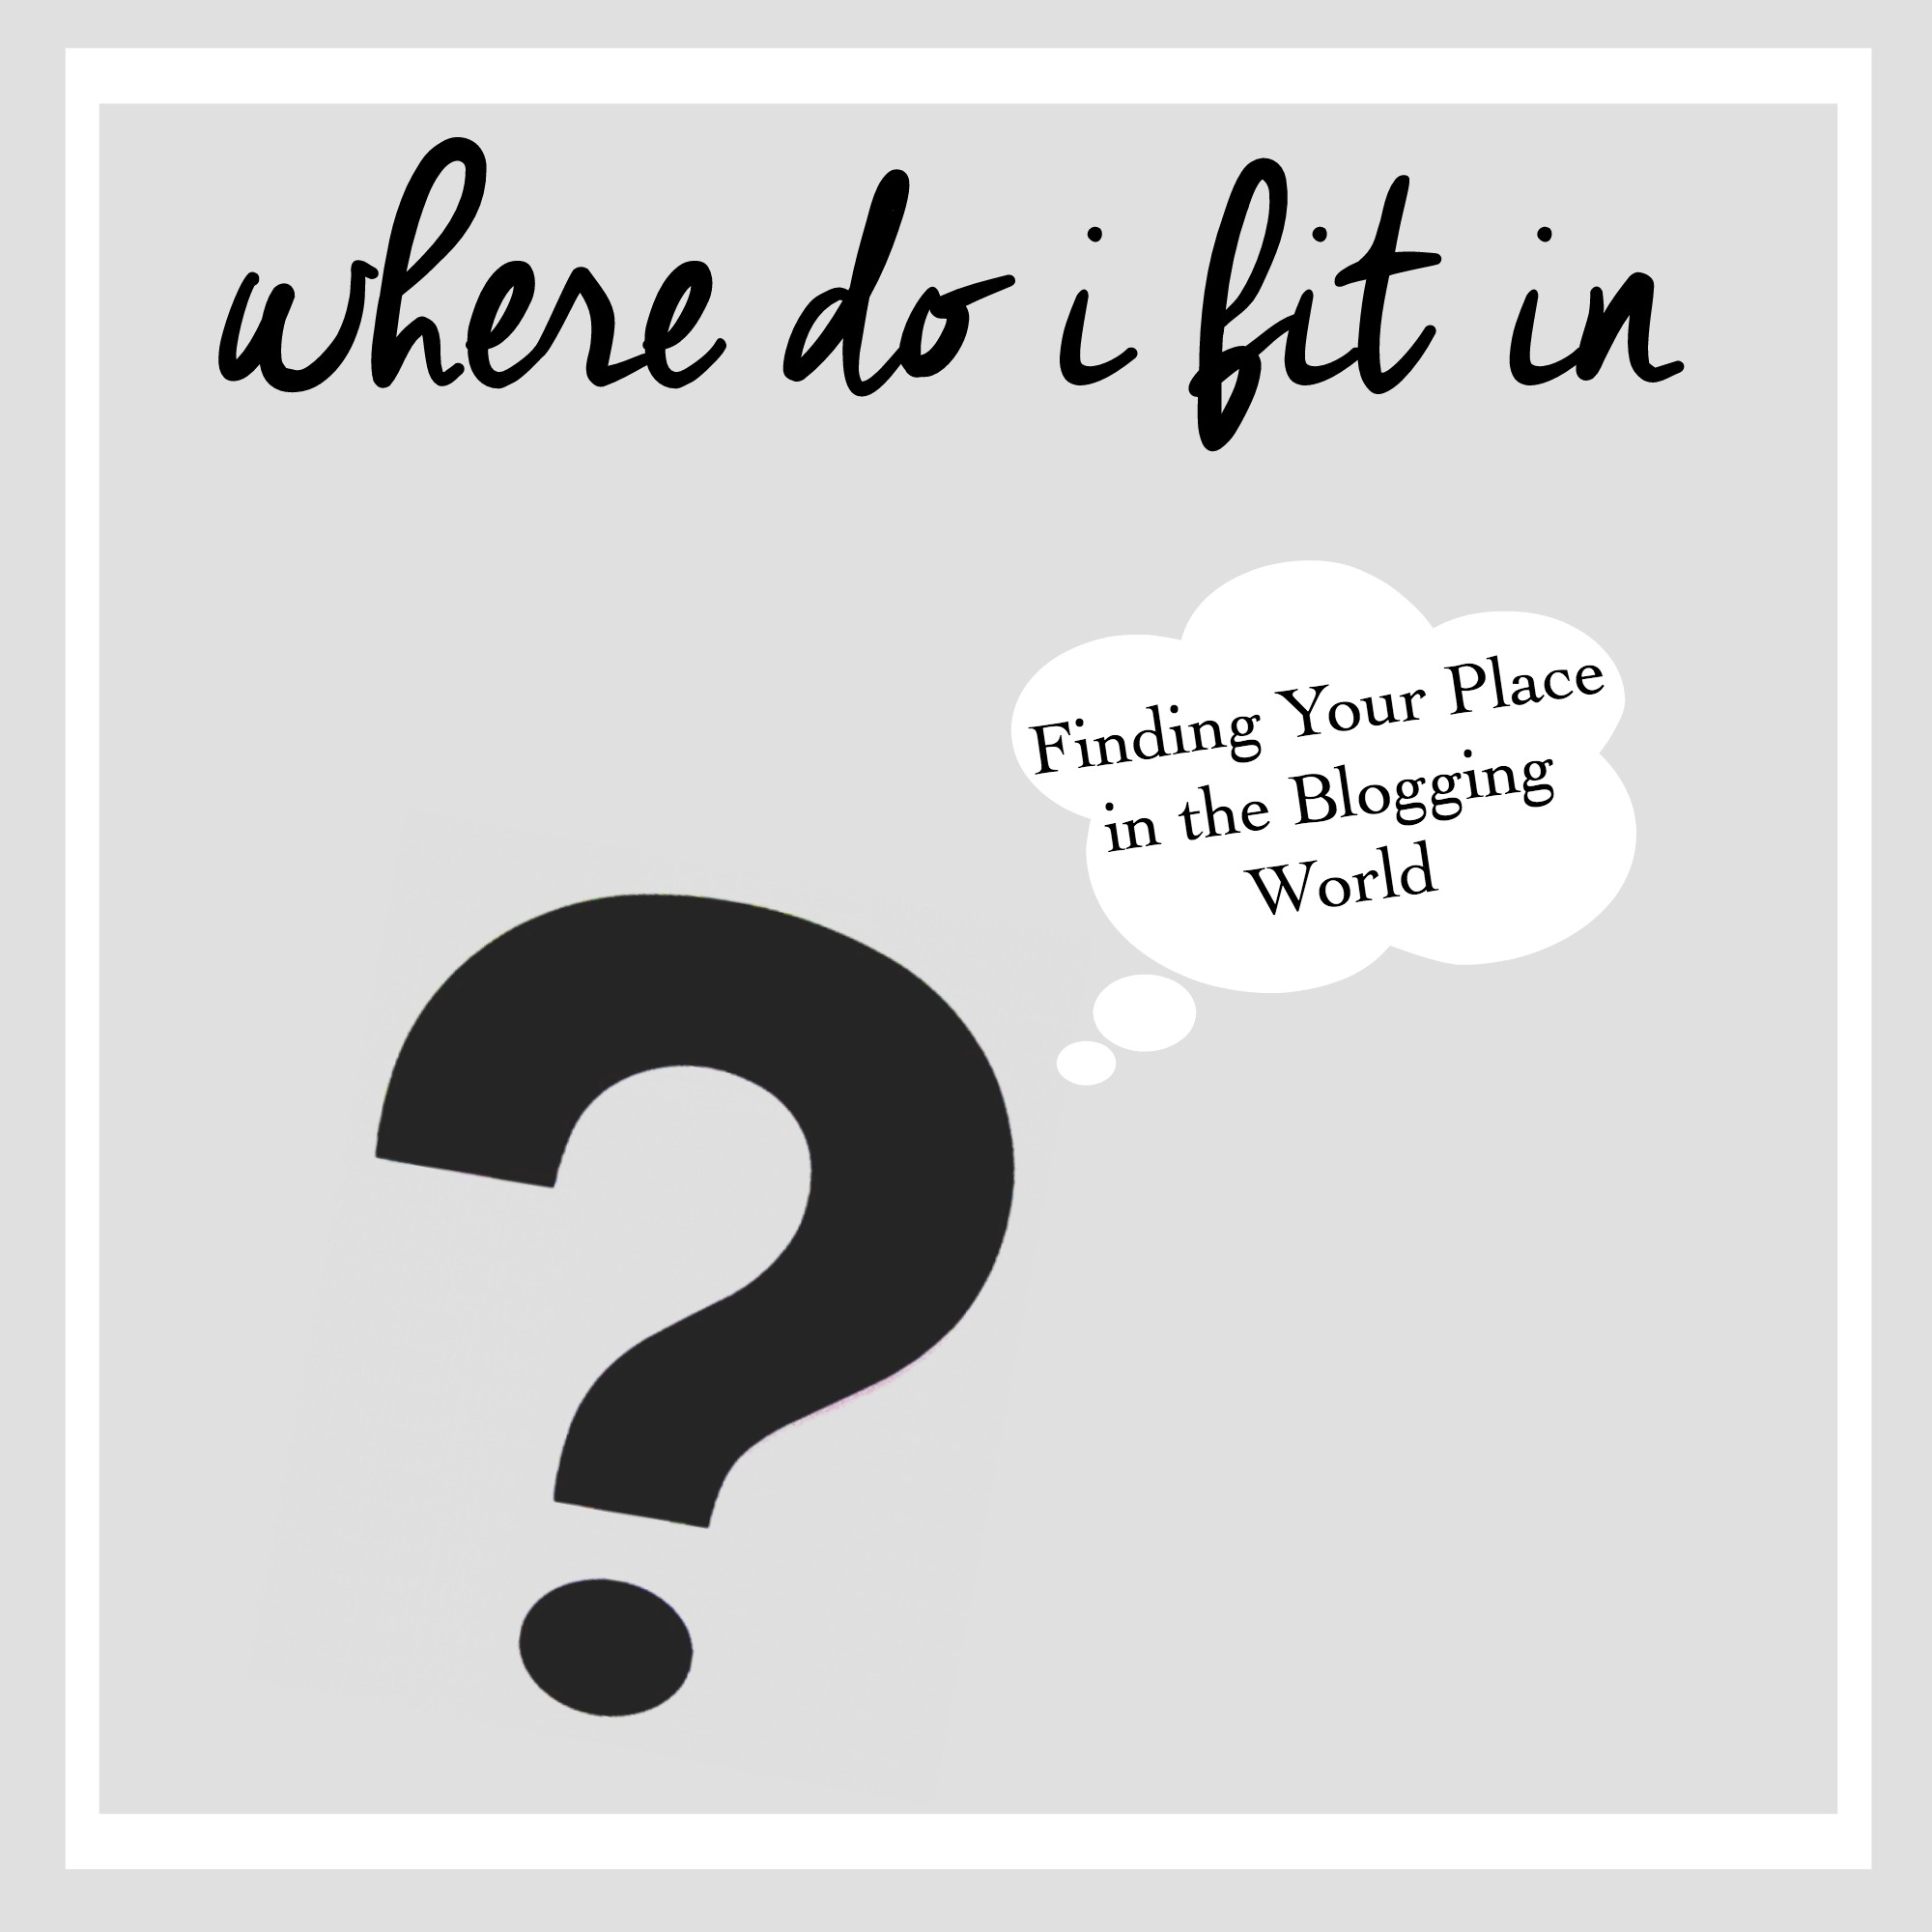 finding-your-place-in-the-blogging-world